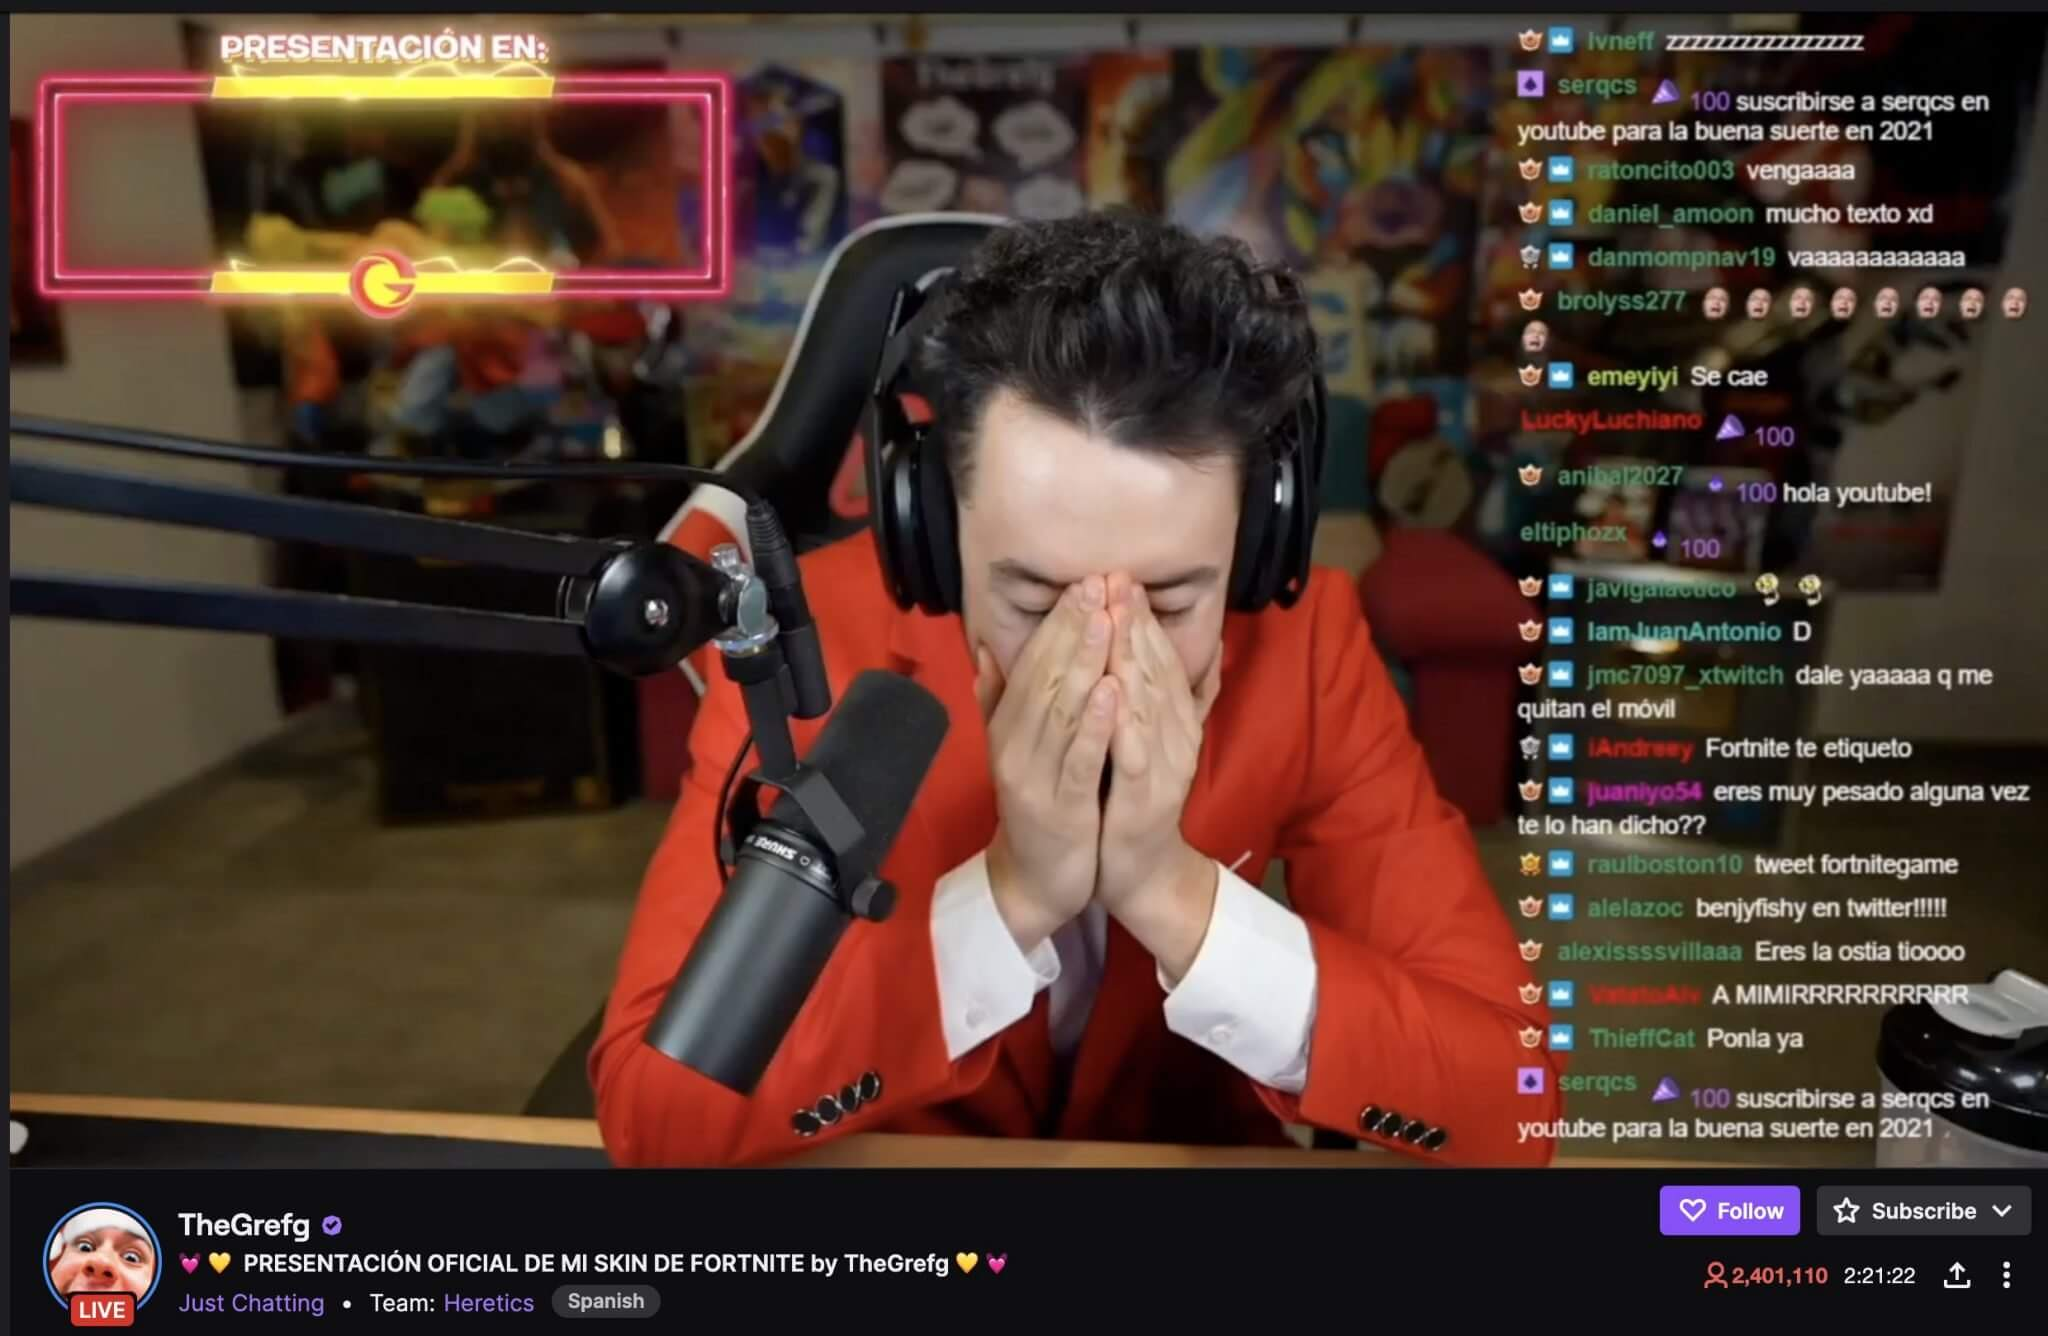 Grefg 2.4 Mil Viewers on Twitch